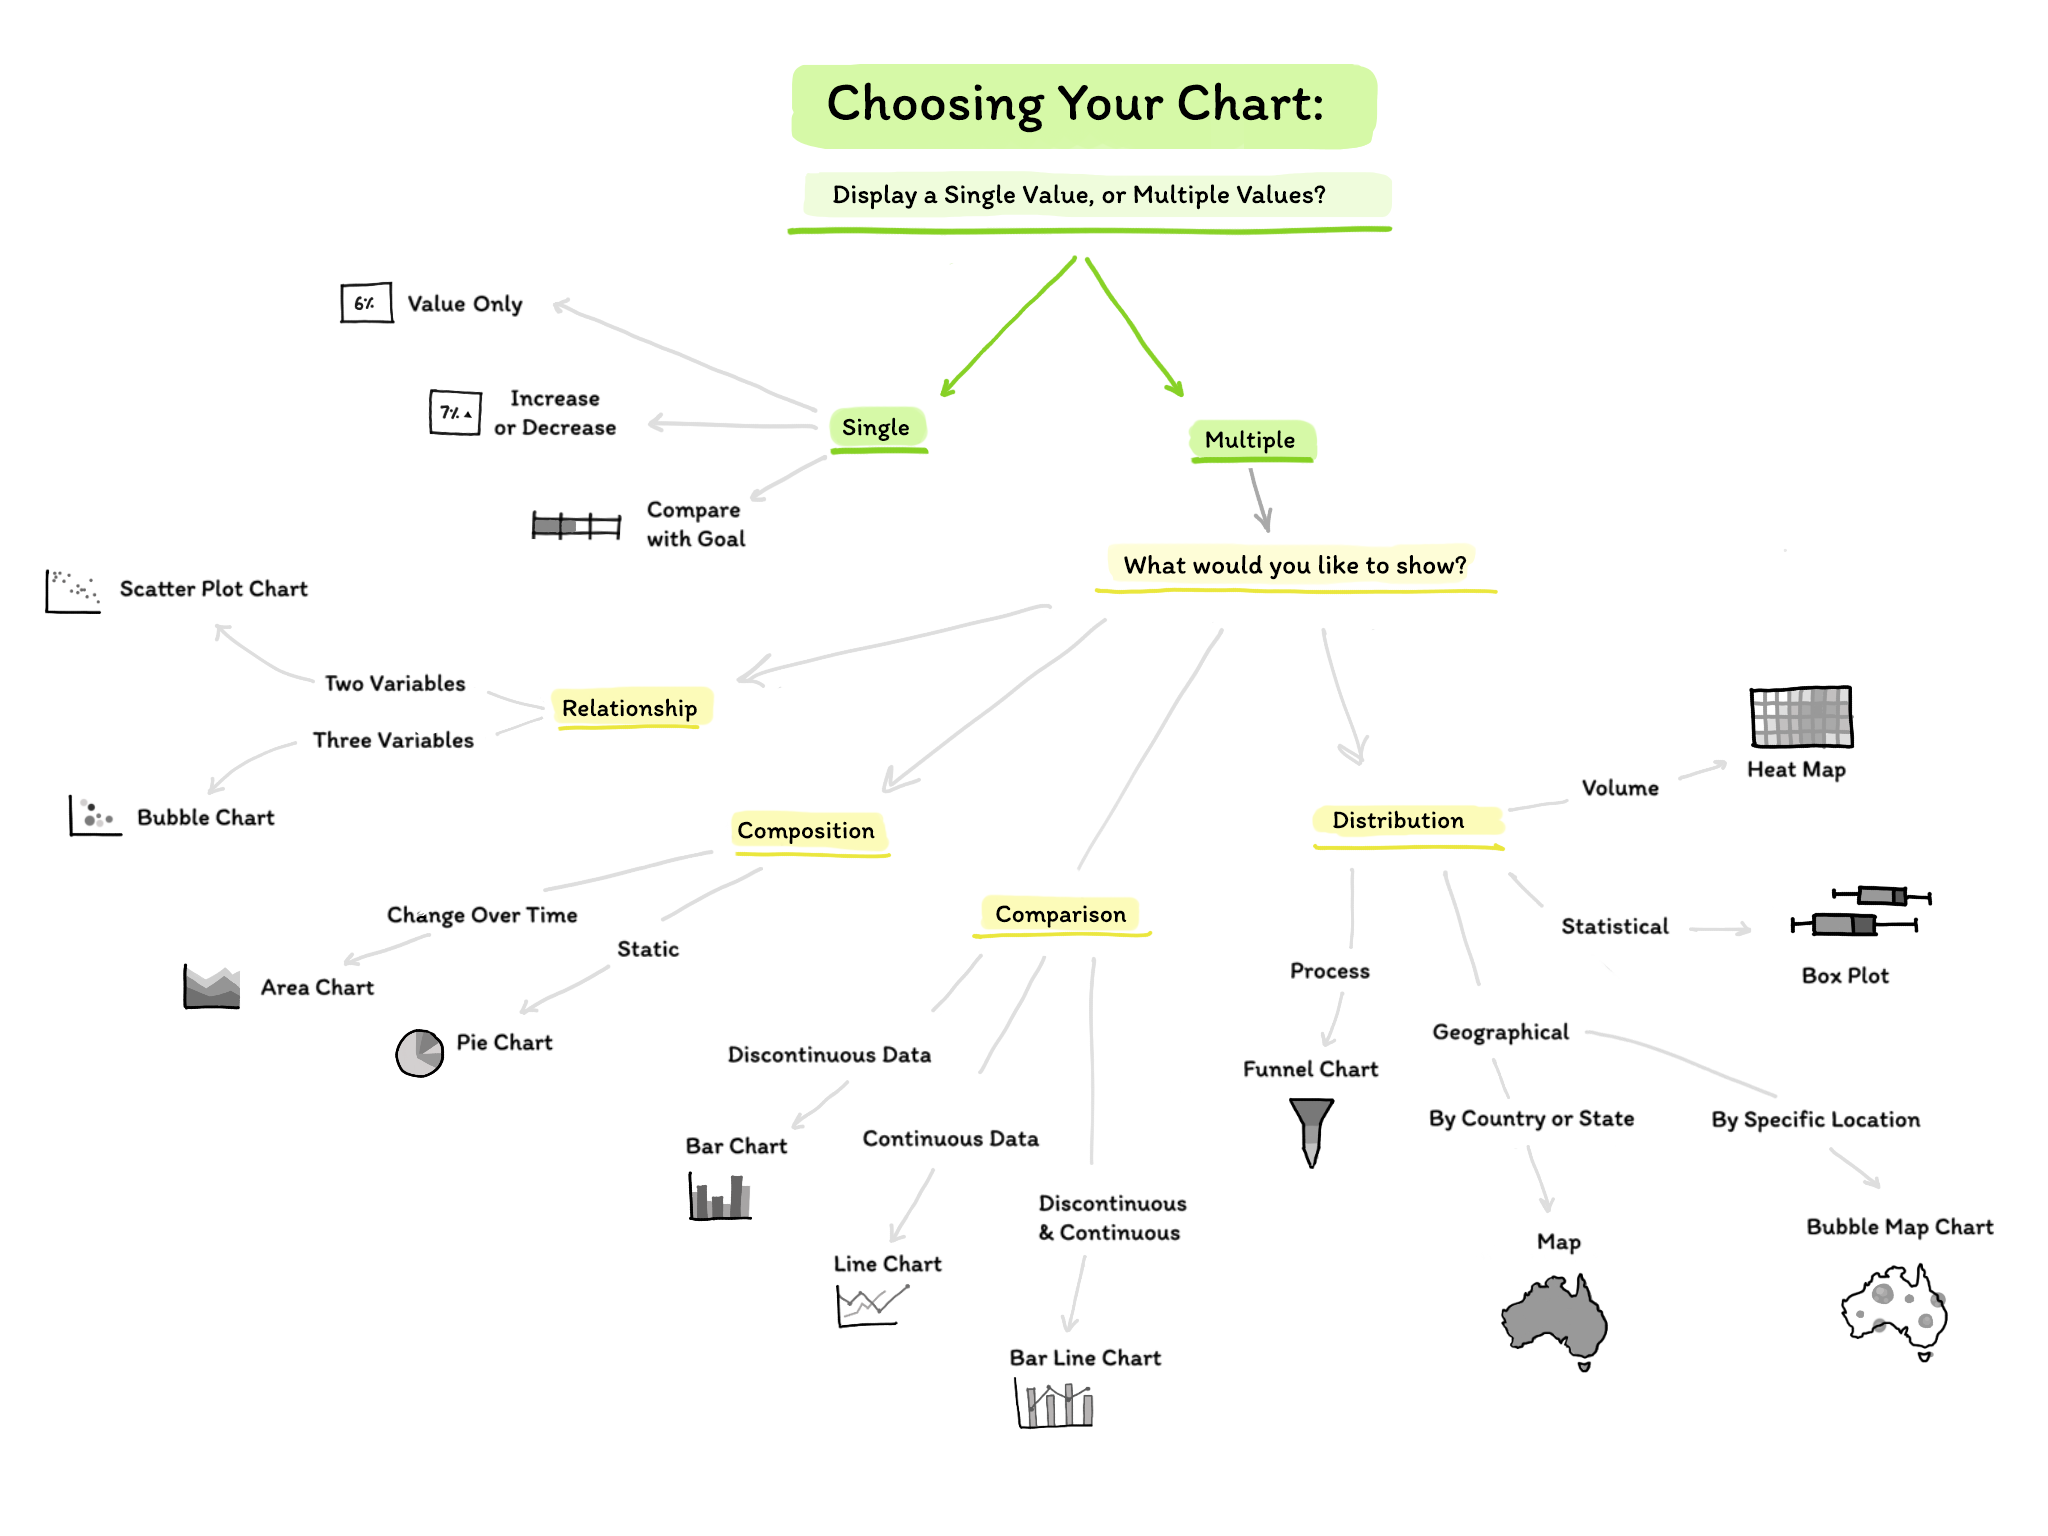 flow chart outlining how to choose what visualization to use